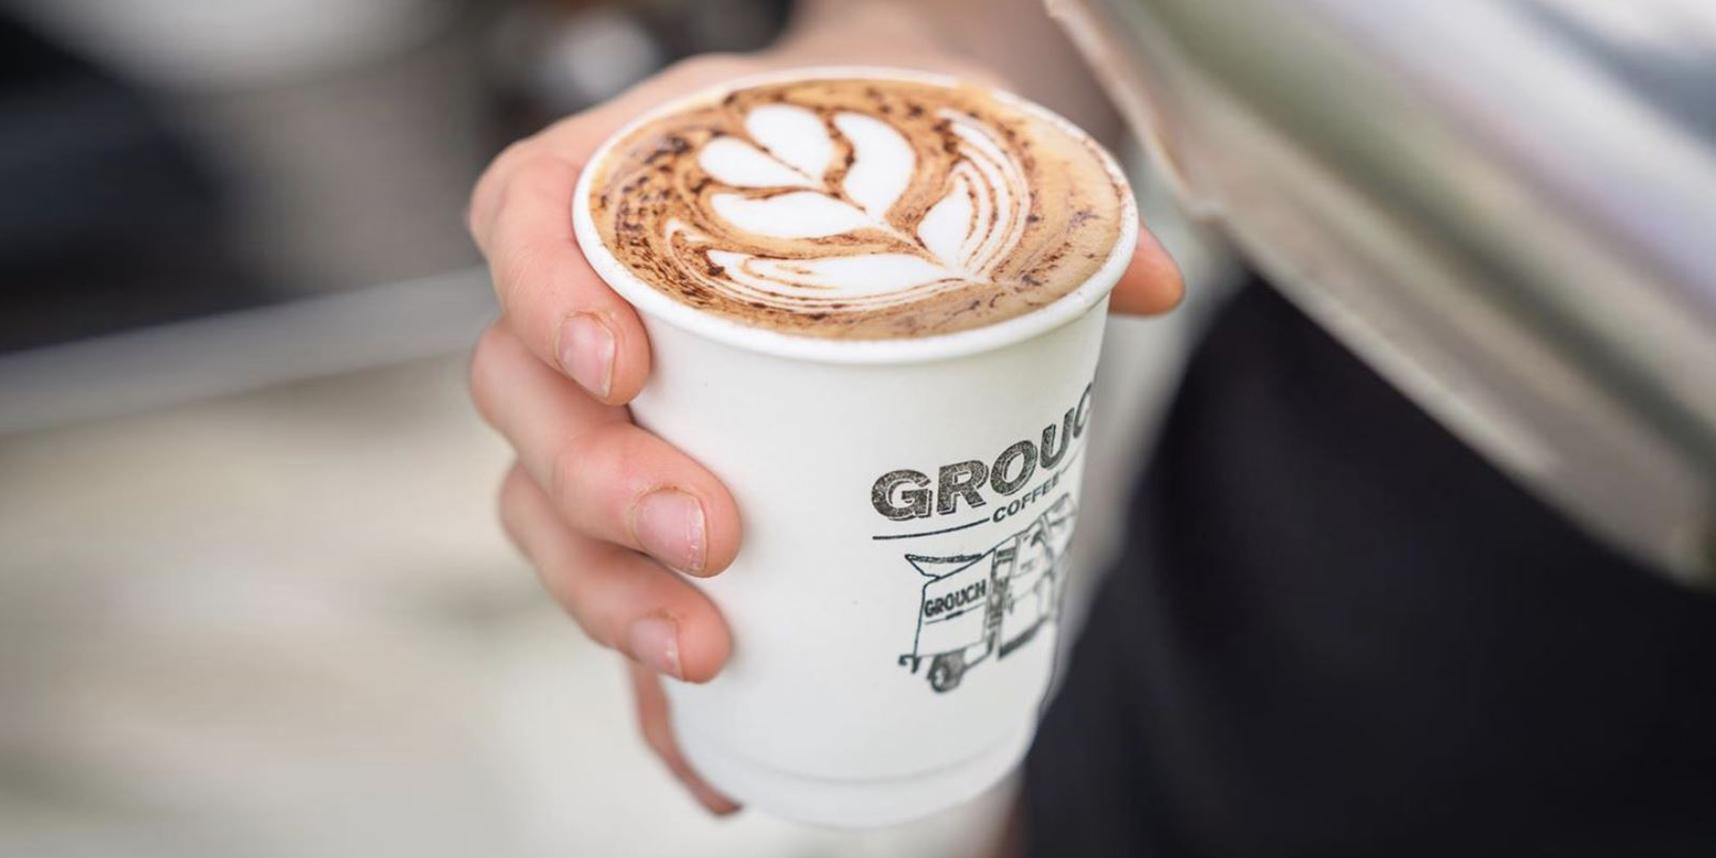 Grouch Coffee is an eco champion